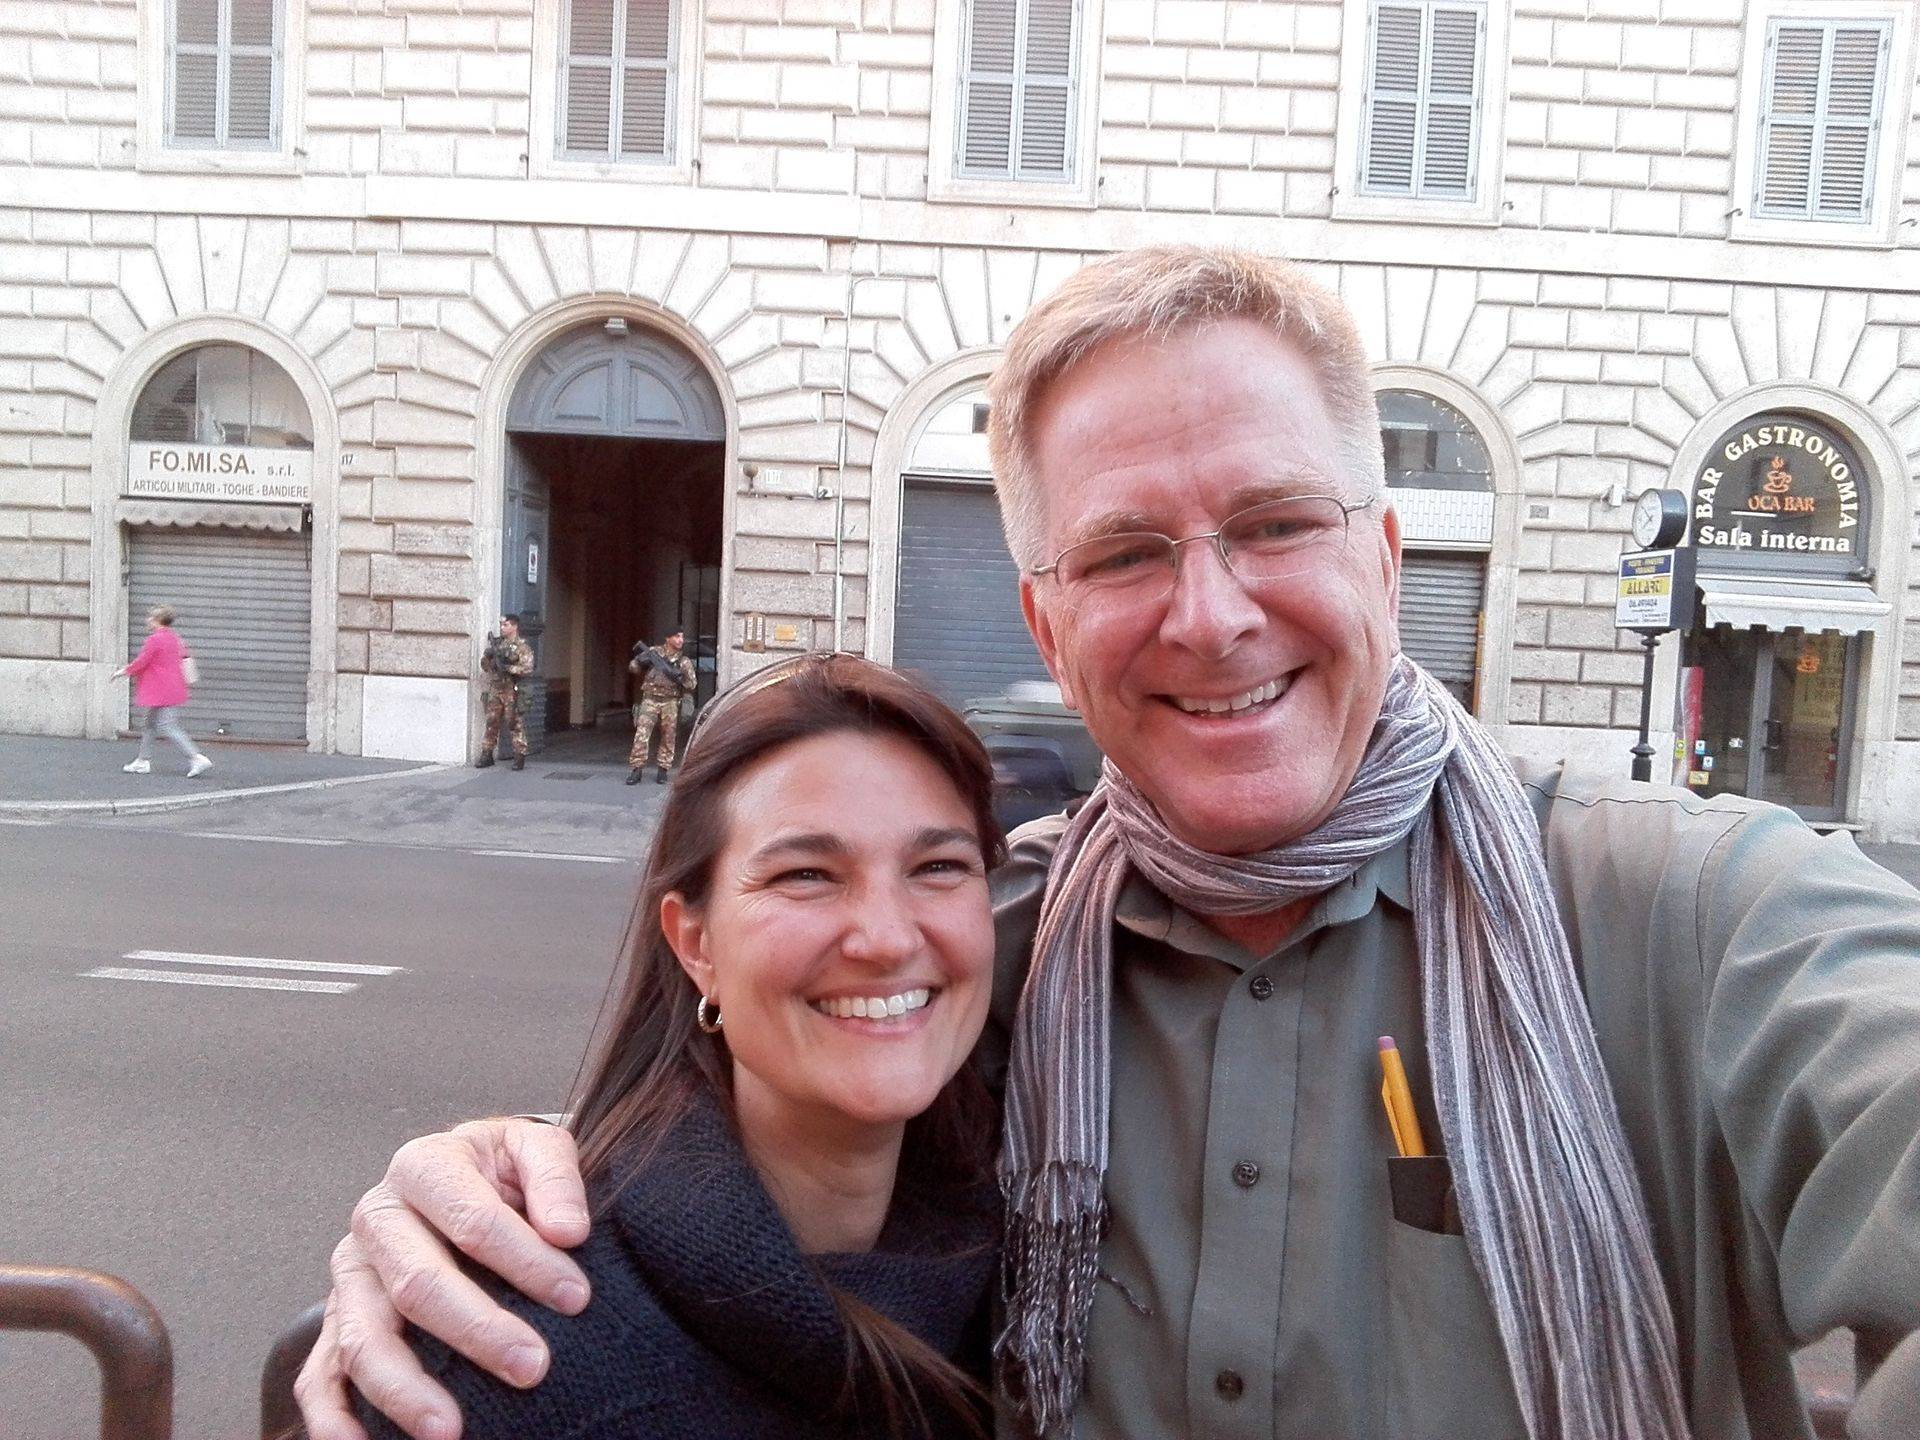 Cris Roman Guide - Cristina with Rick Steves